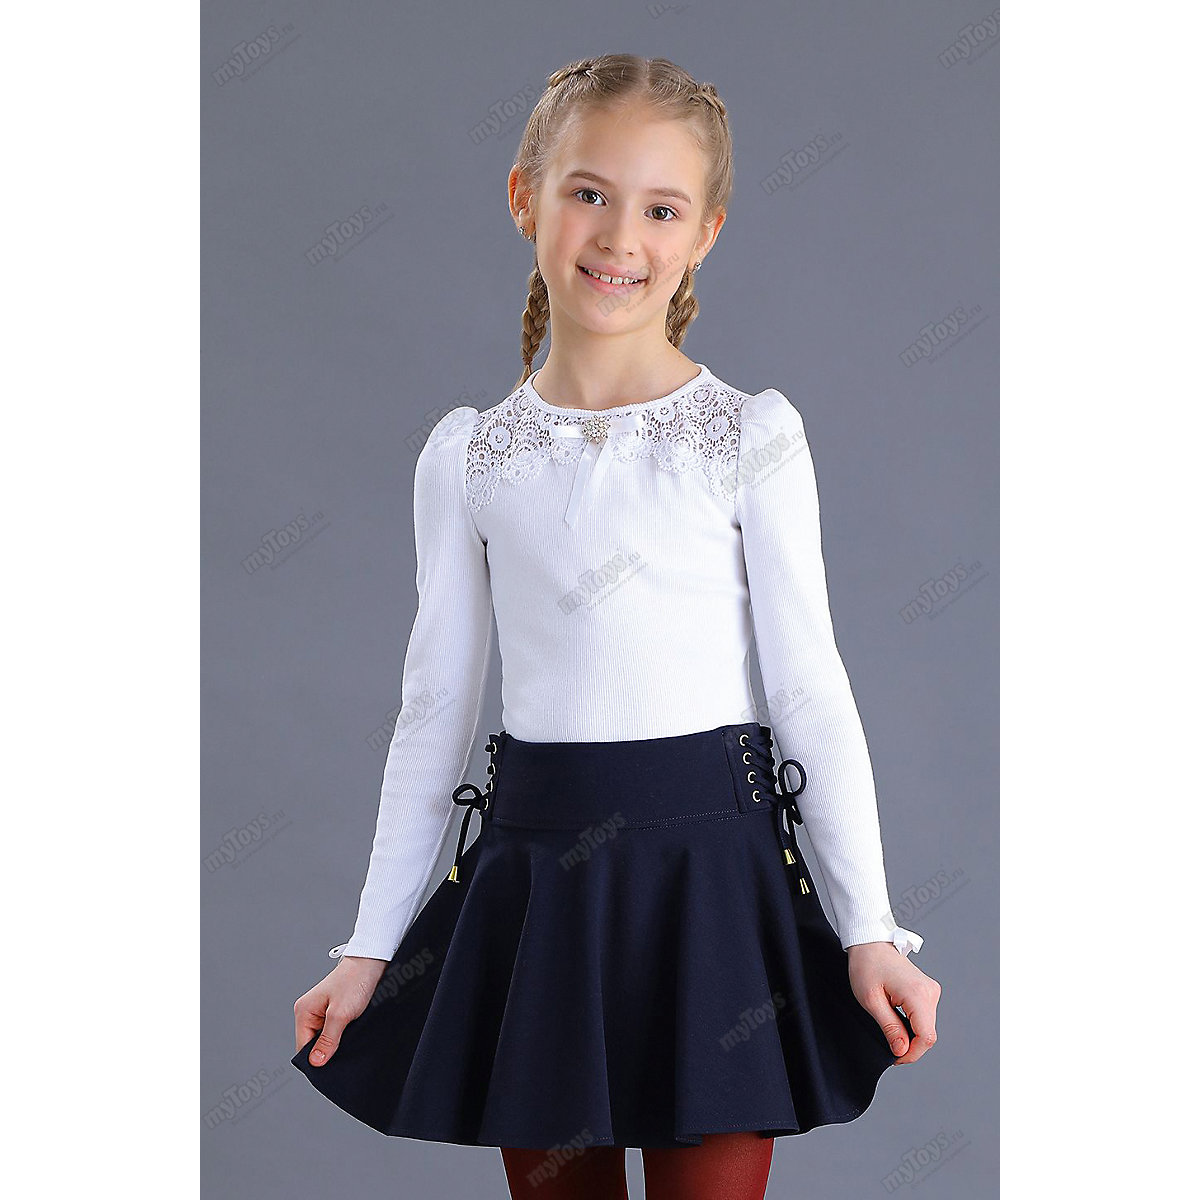 Malenkaya Lady Blouses & Shirts 11686165 blouse for girl school  clothes jacket wardrobe childrens shirt White Blue Girls O-Neck plus size leaf sheer v neck blouse